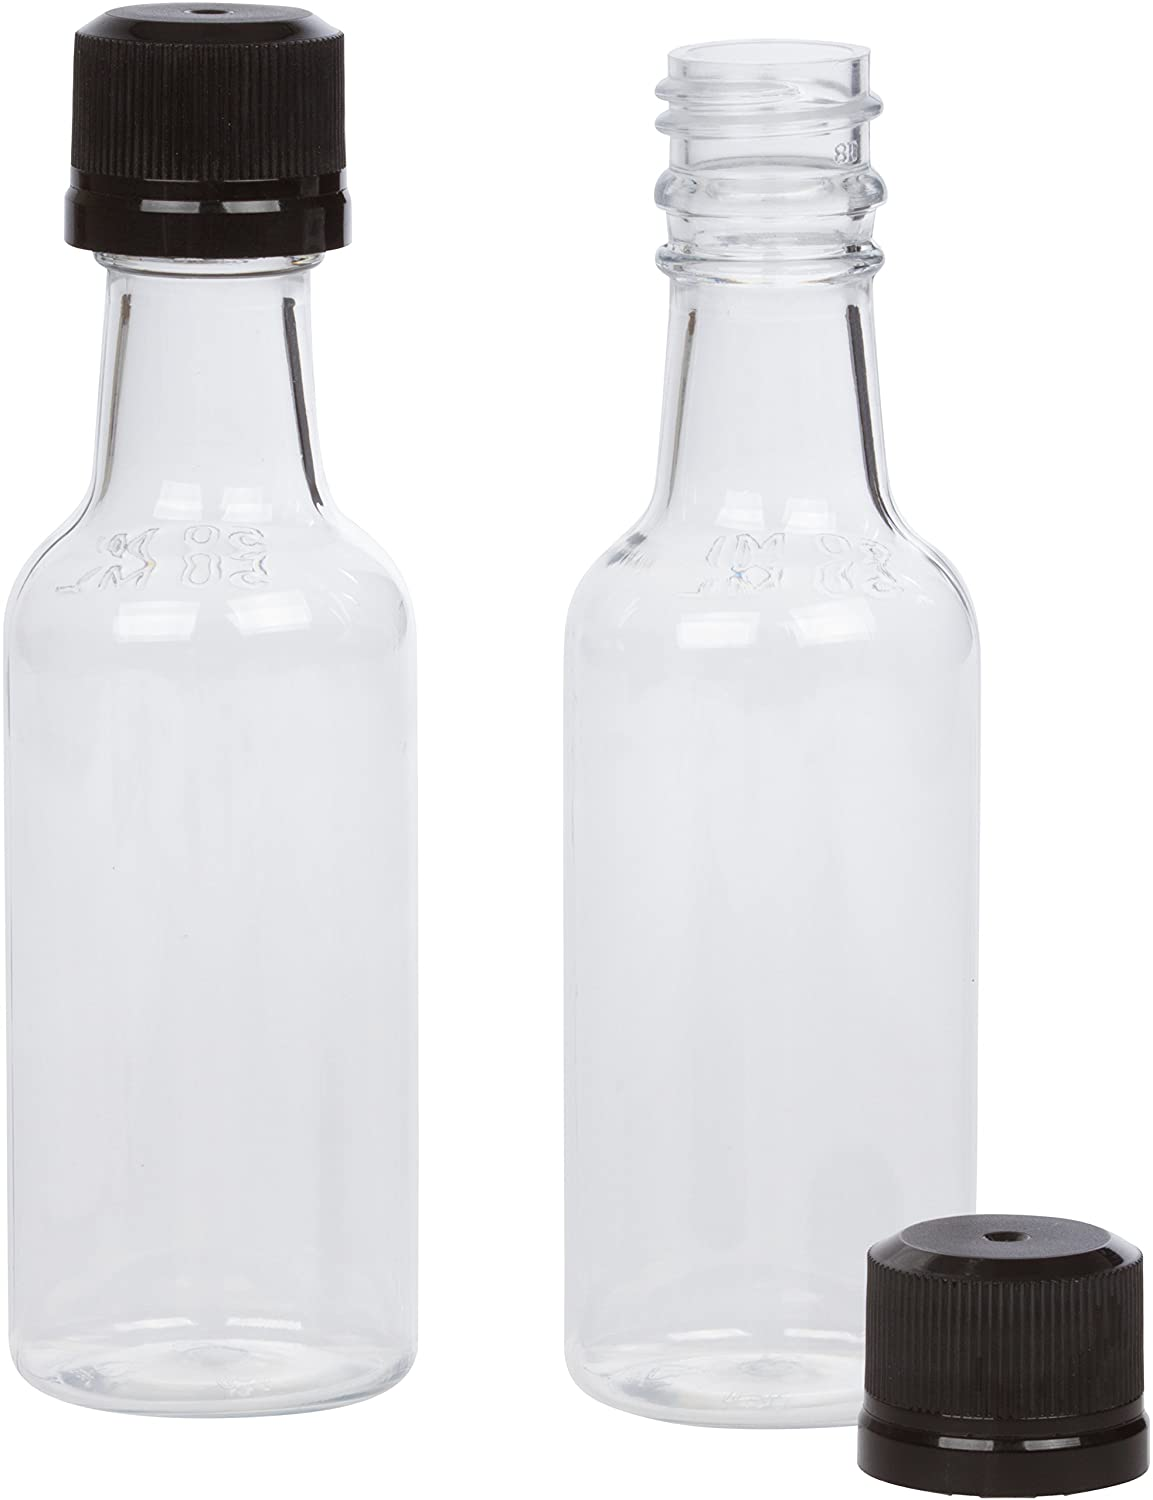 Amazon.com: (12) Mini Liquor Bottles 50ml Black mini empty plastic ...